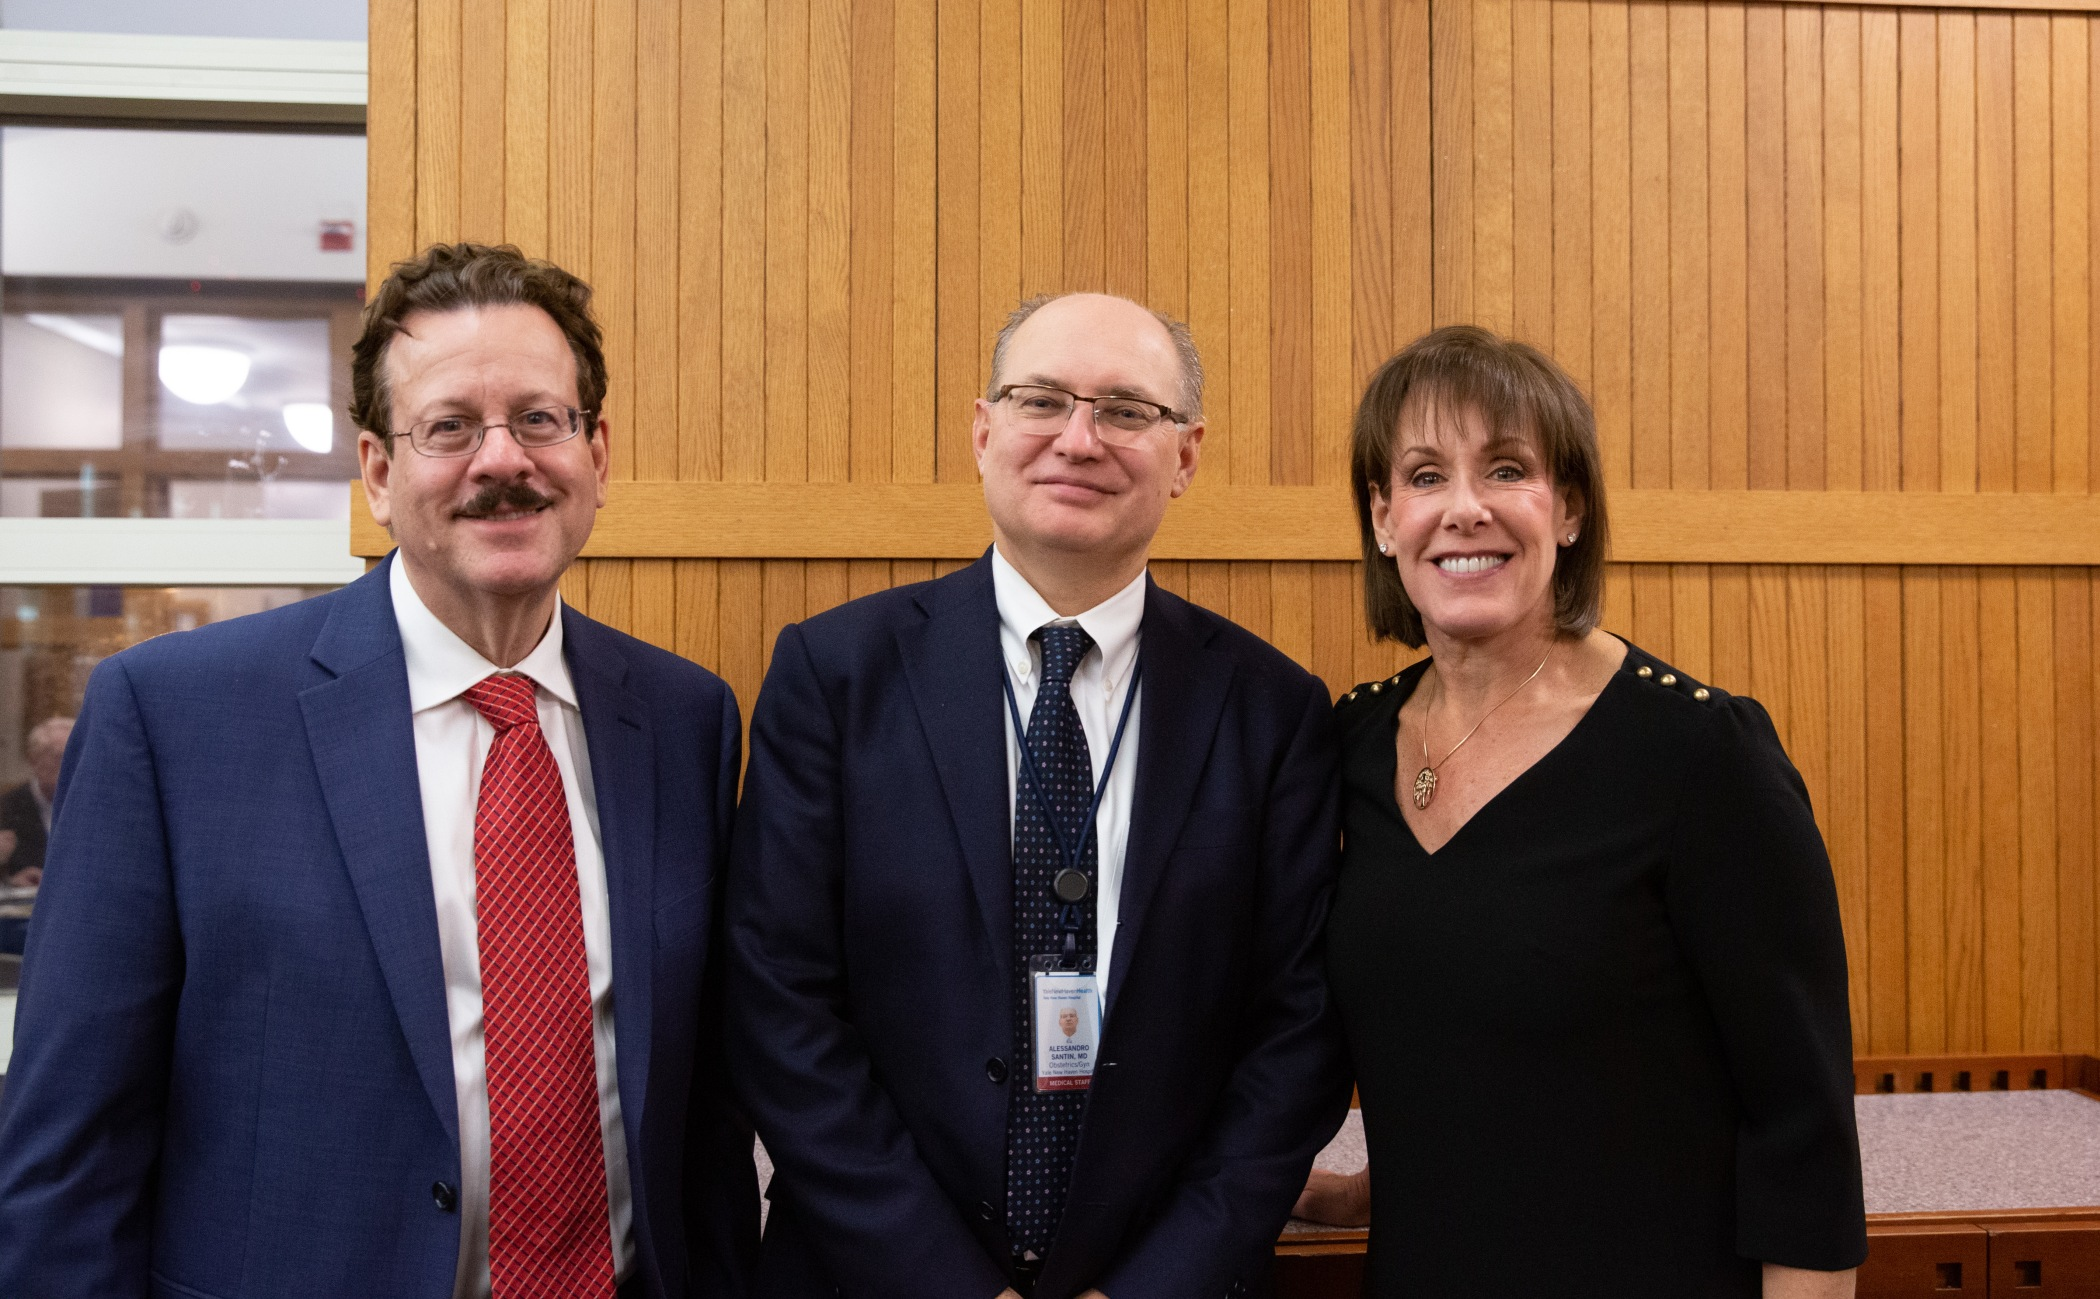 Arthur Forkos, Alessandro Santin, MD  and Barbara Bender